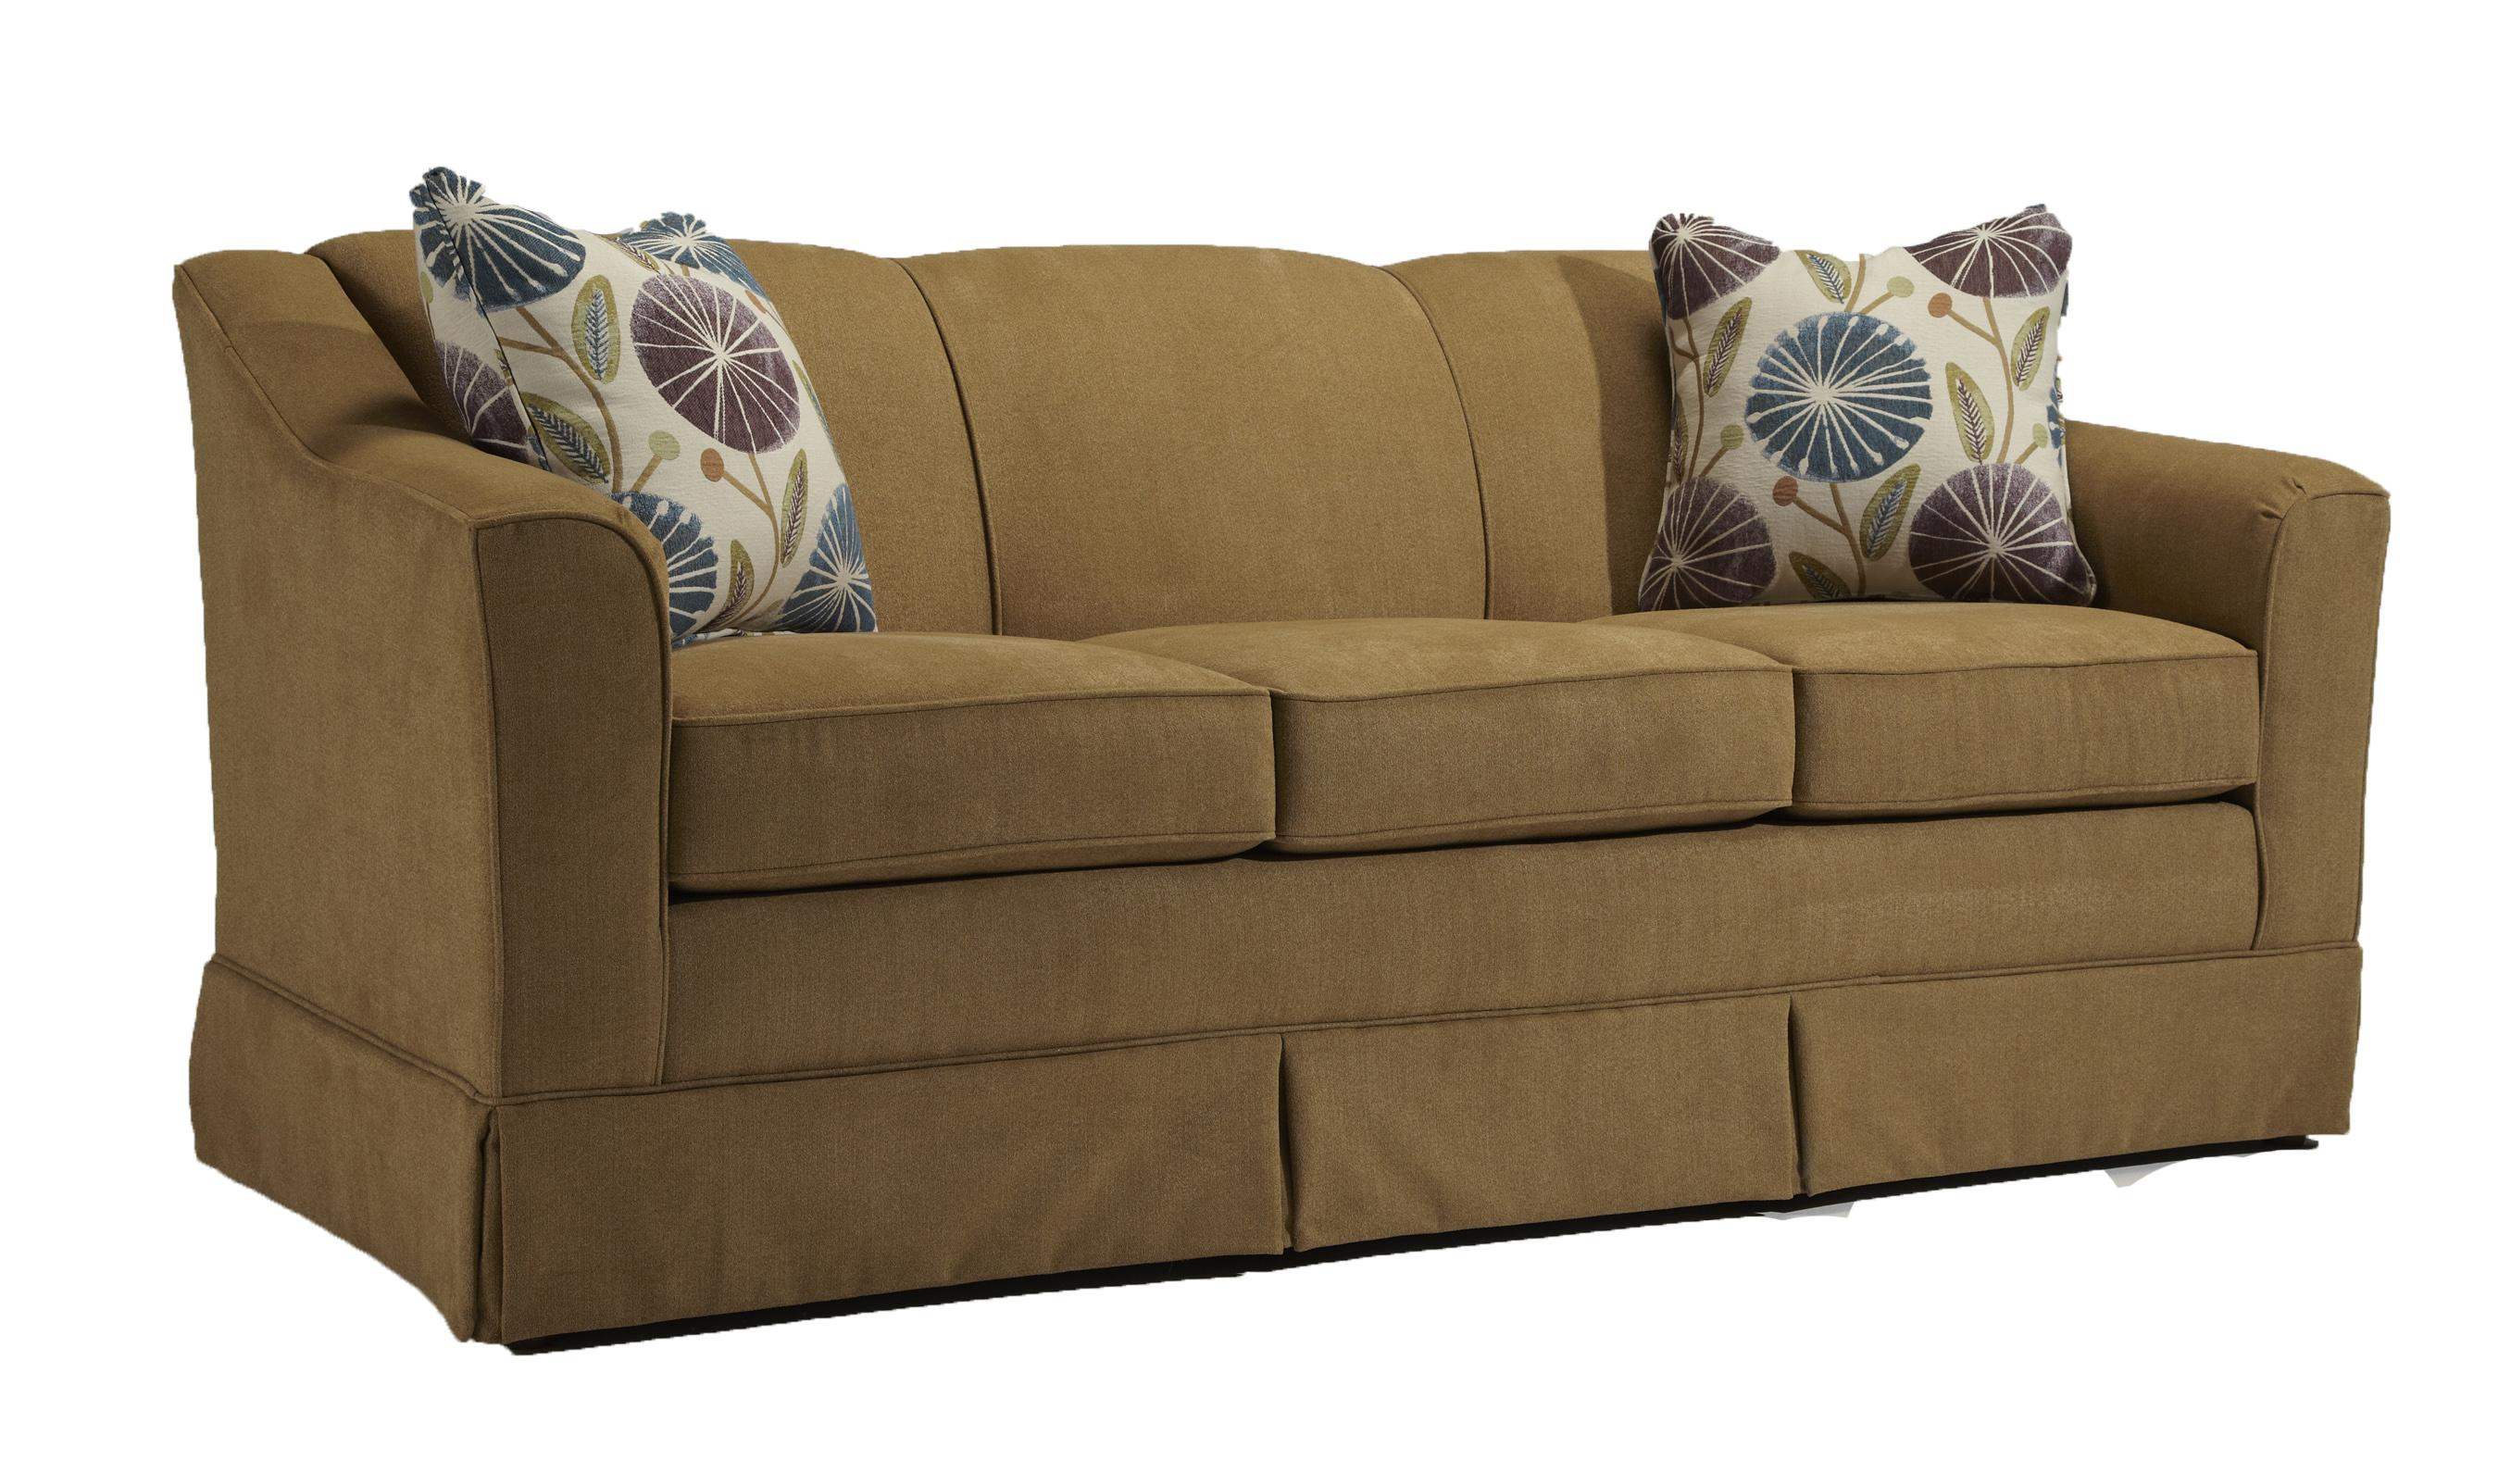 Best Home Furnishings Emeline Customizable Sofa - Item Number: S9XX